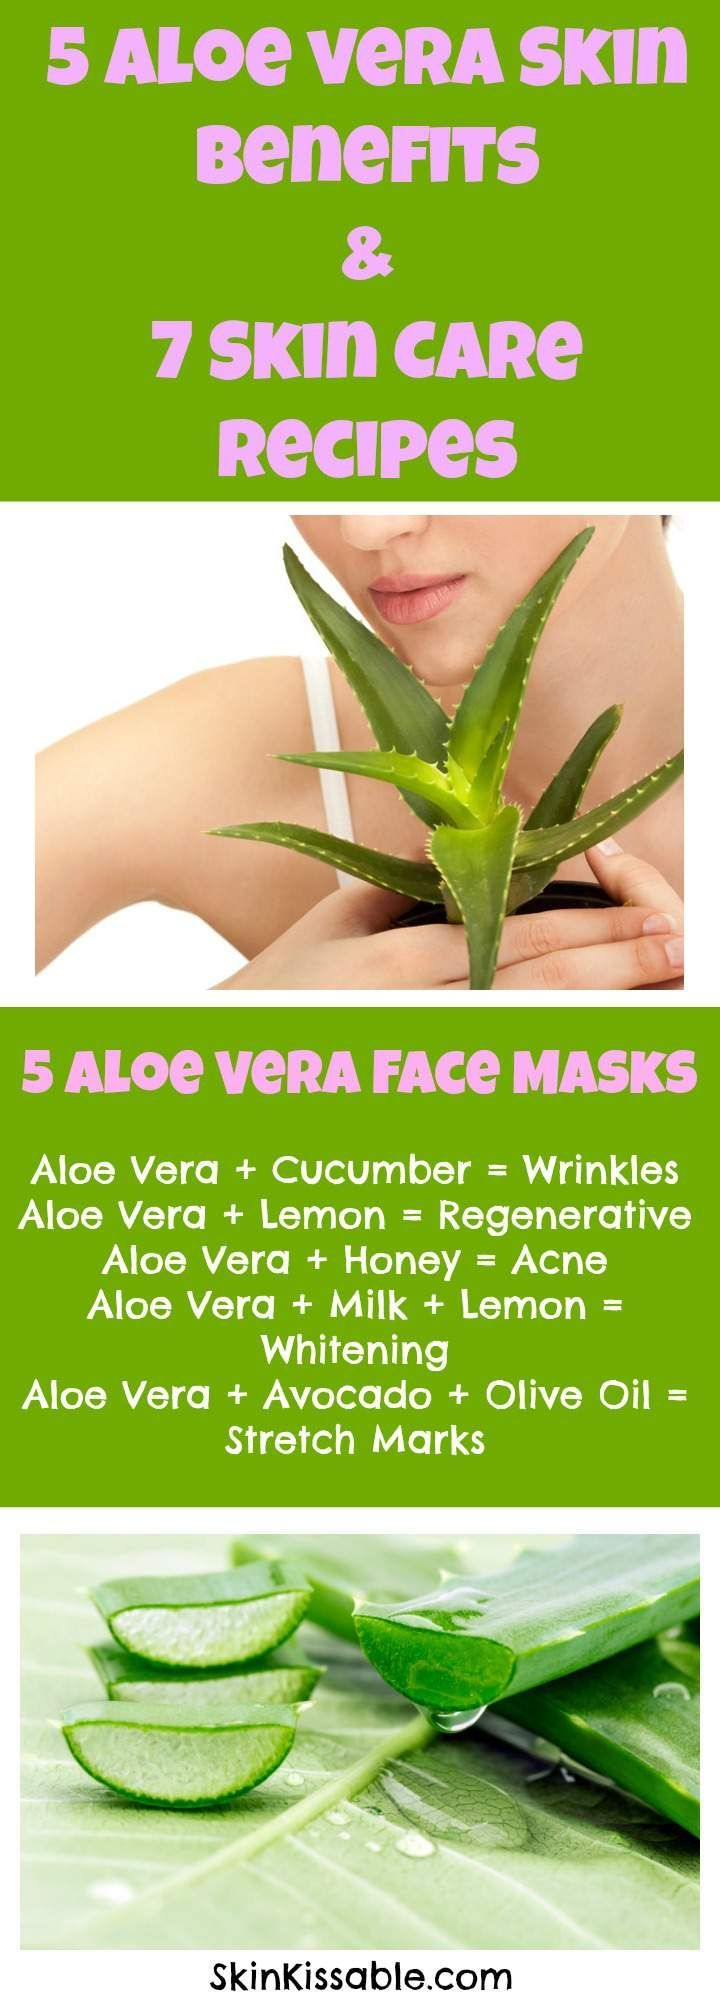 How Good Is To Use Aloe Vera Every Day For The Skin And The Face Discover All The Amazing Benefits F Aloe Vera For Skin Aloe Vera Skin Care Skin Care